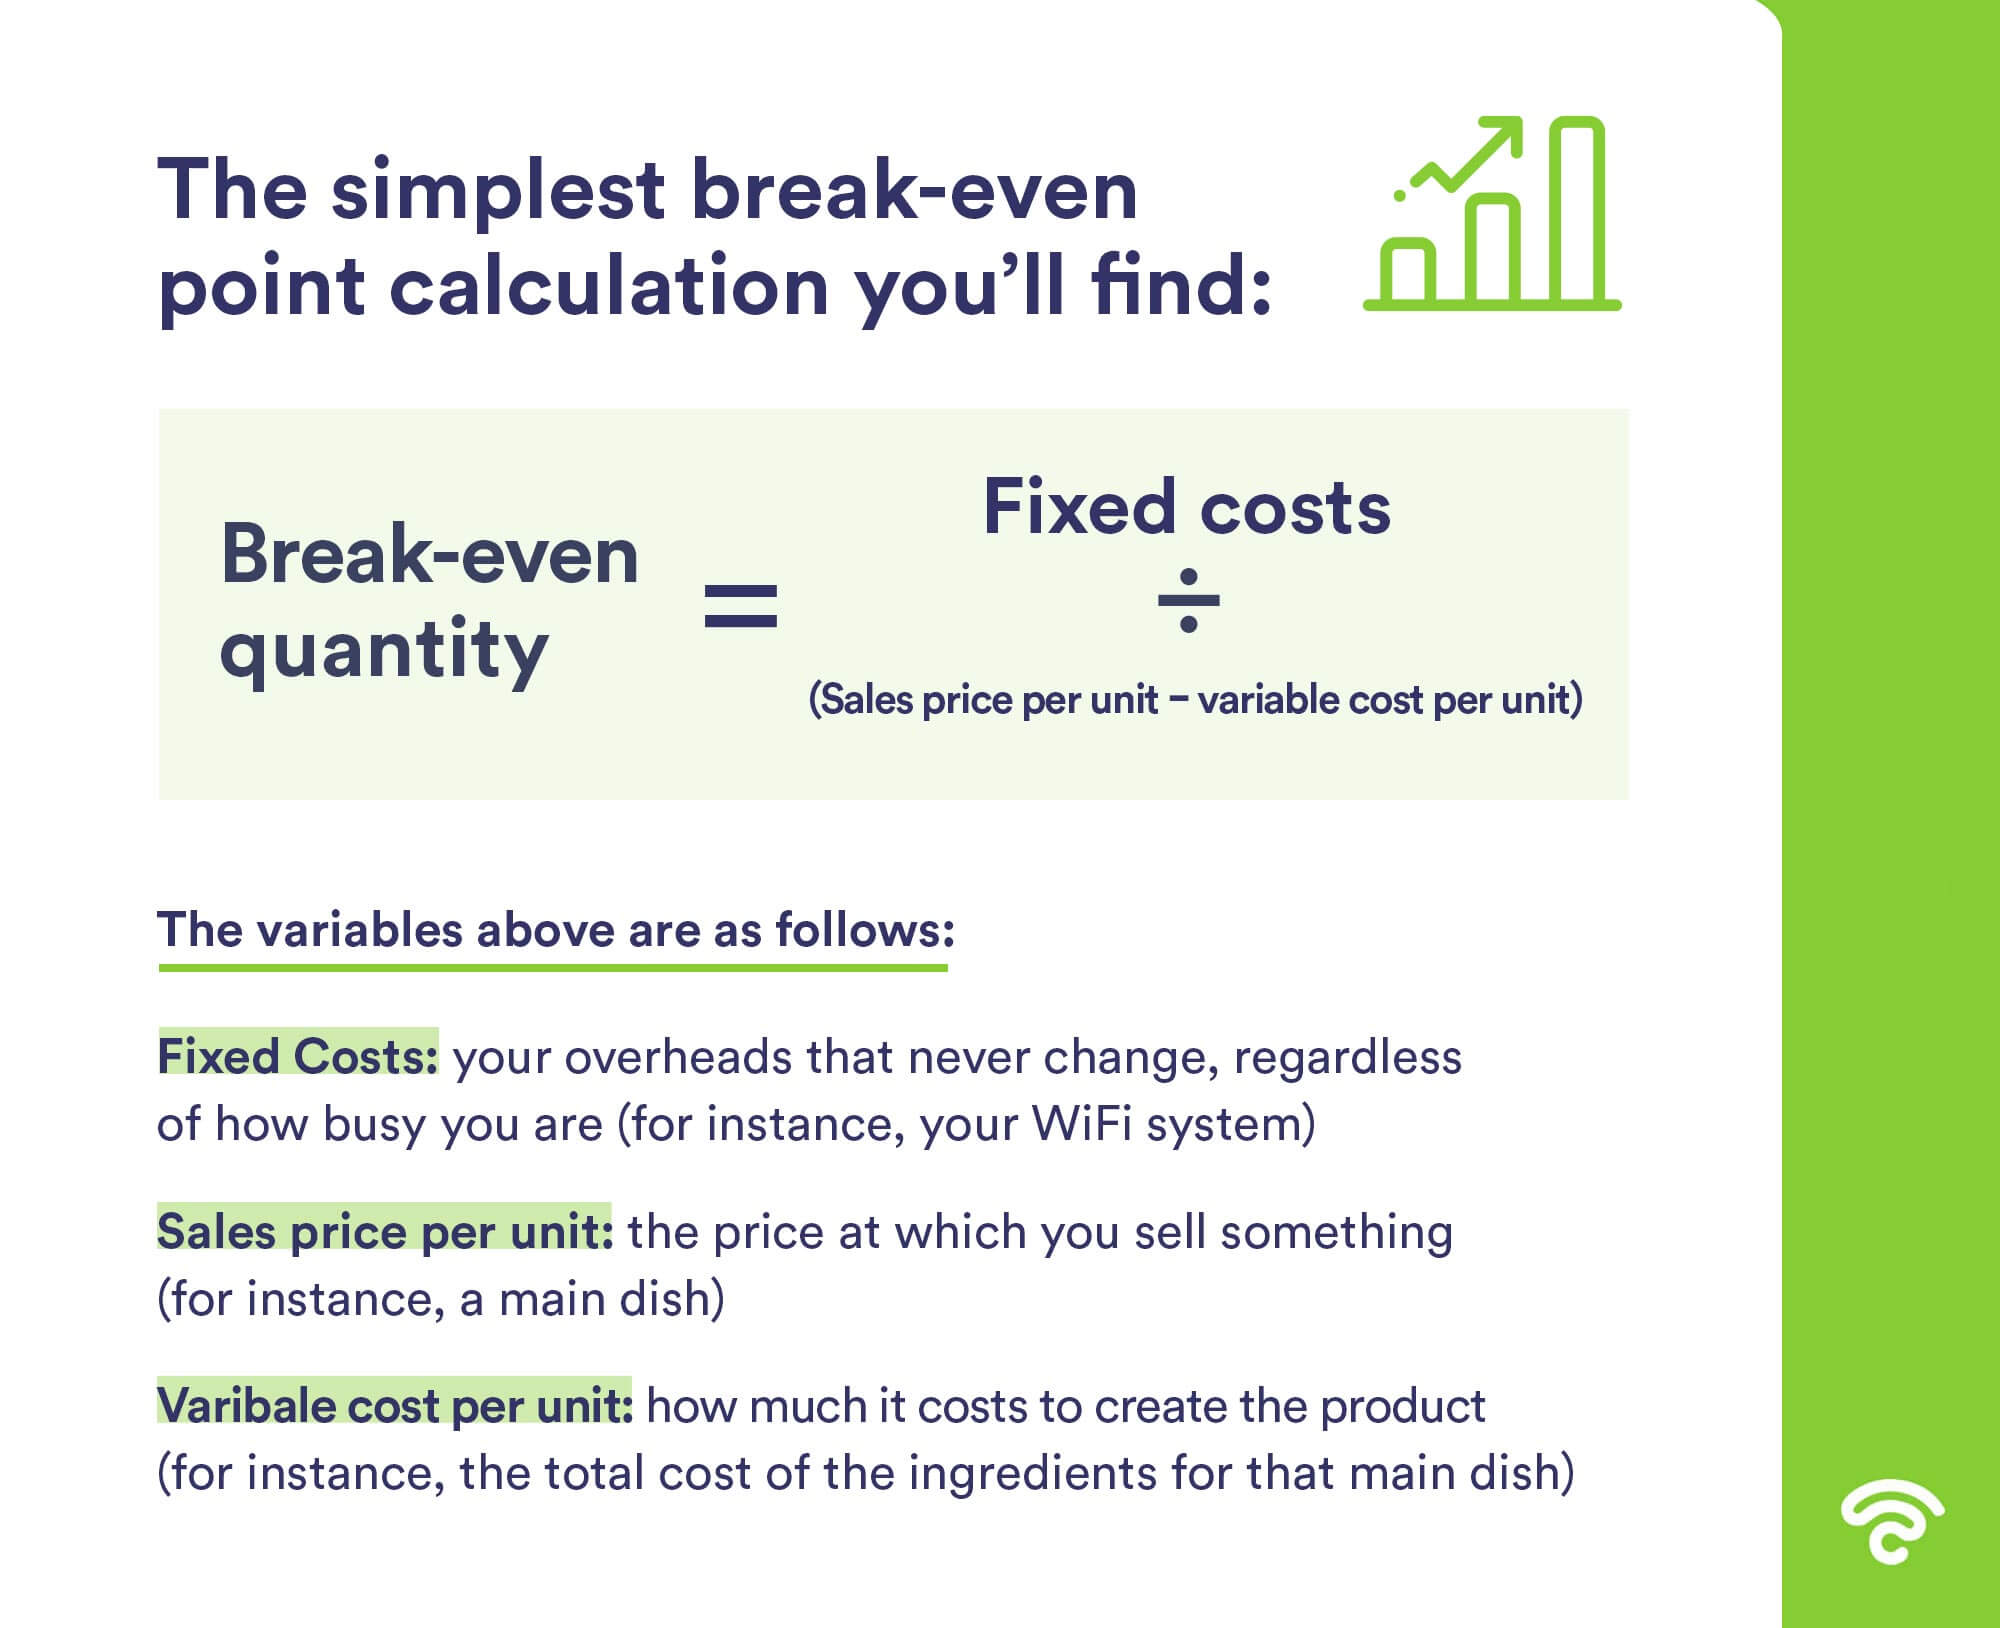 break-even point calculation